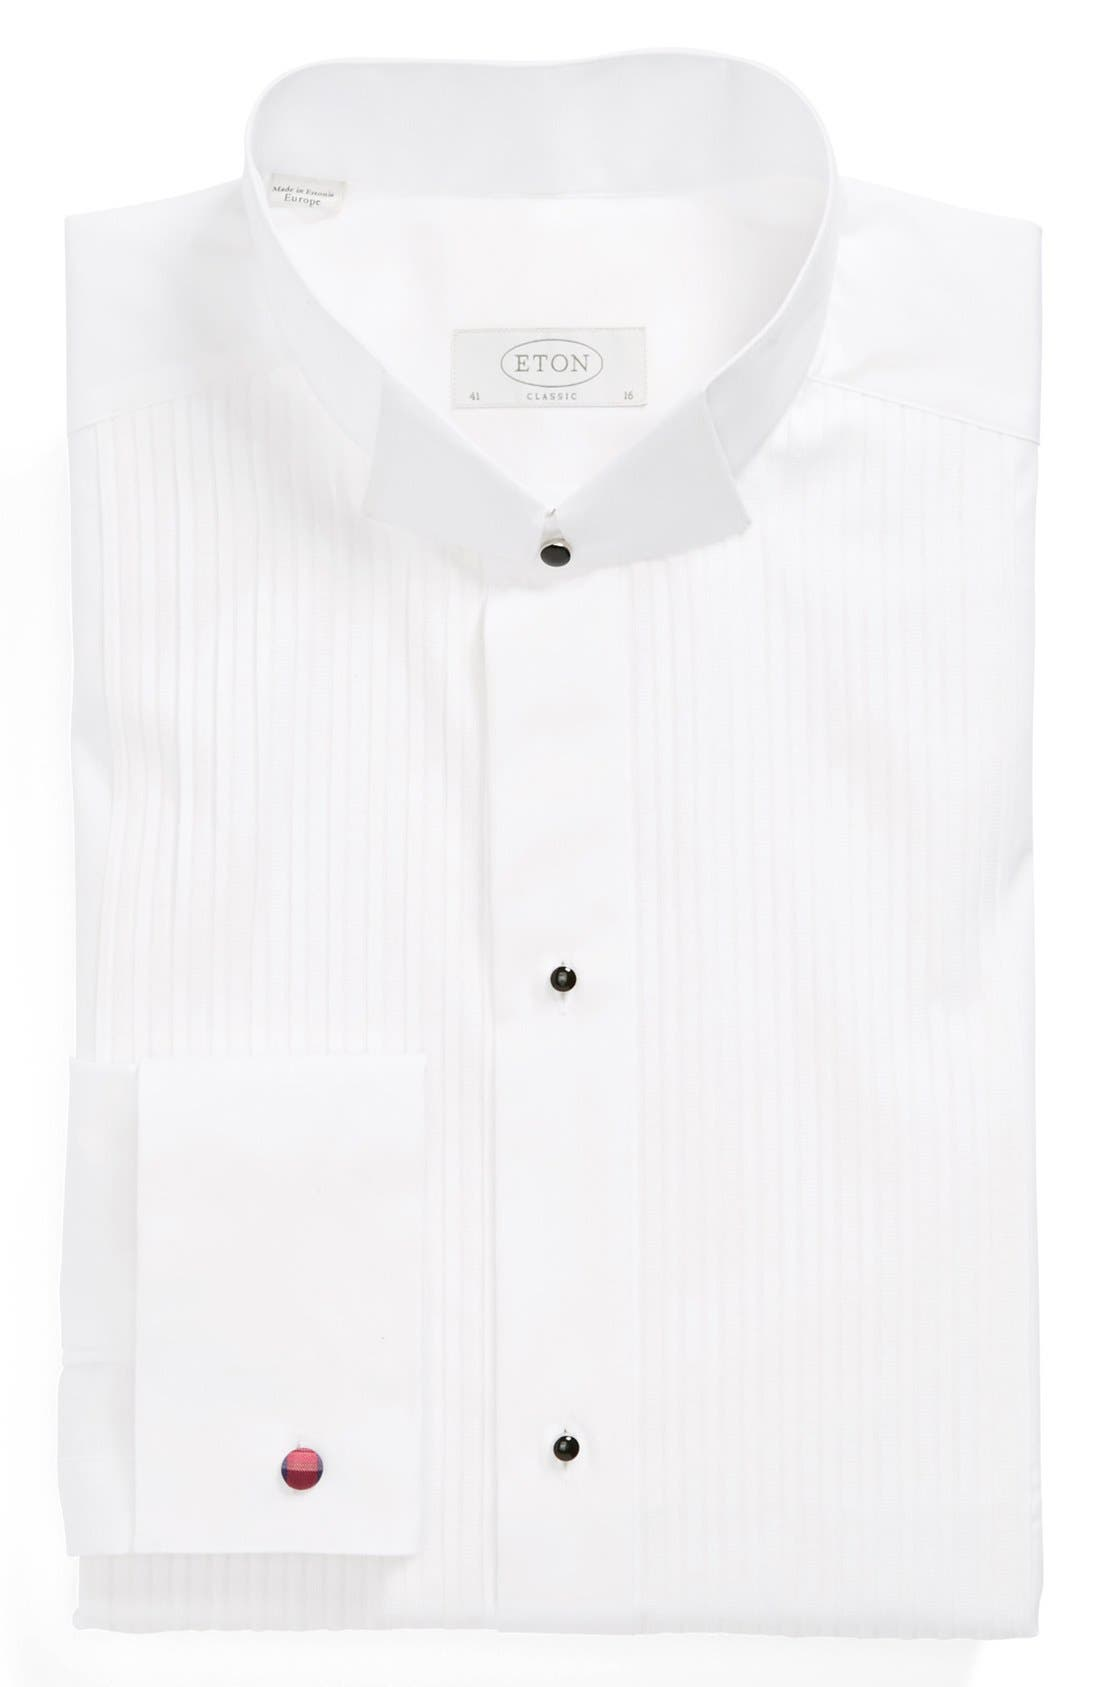 Main Image - Eton Classic Fit Dress Shirt